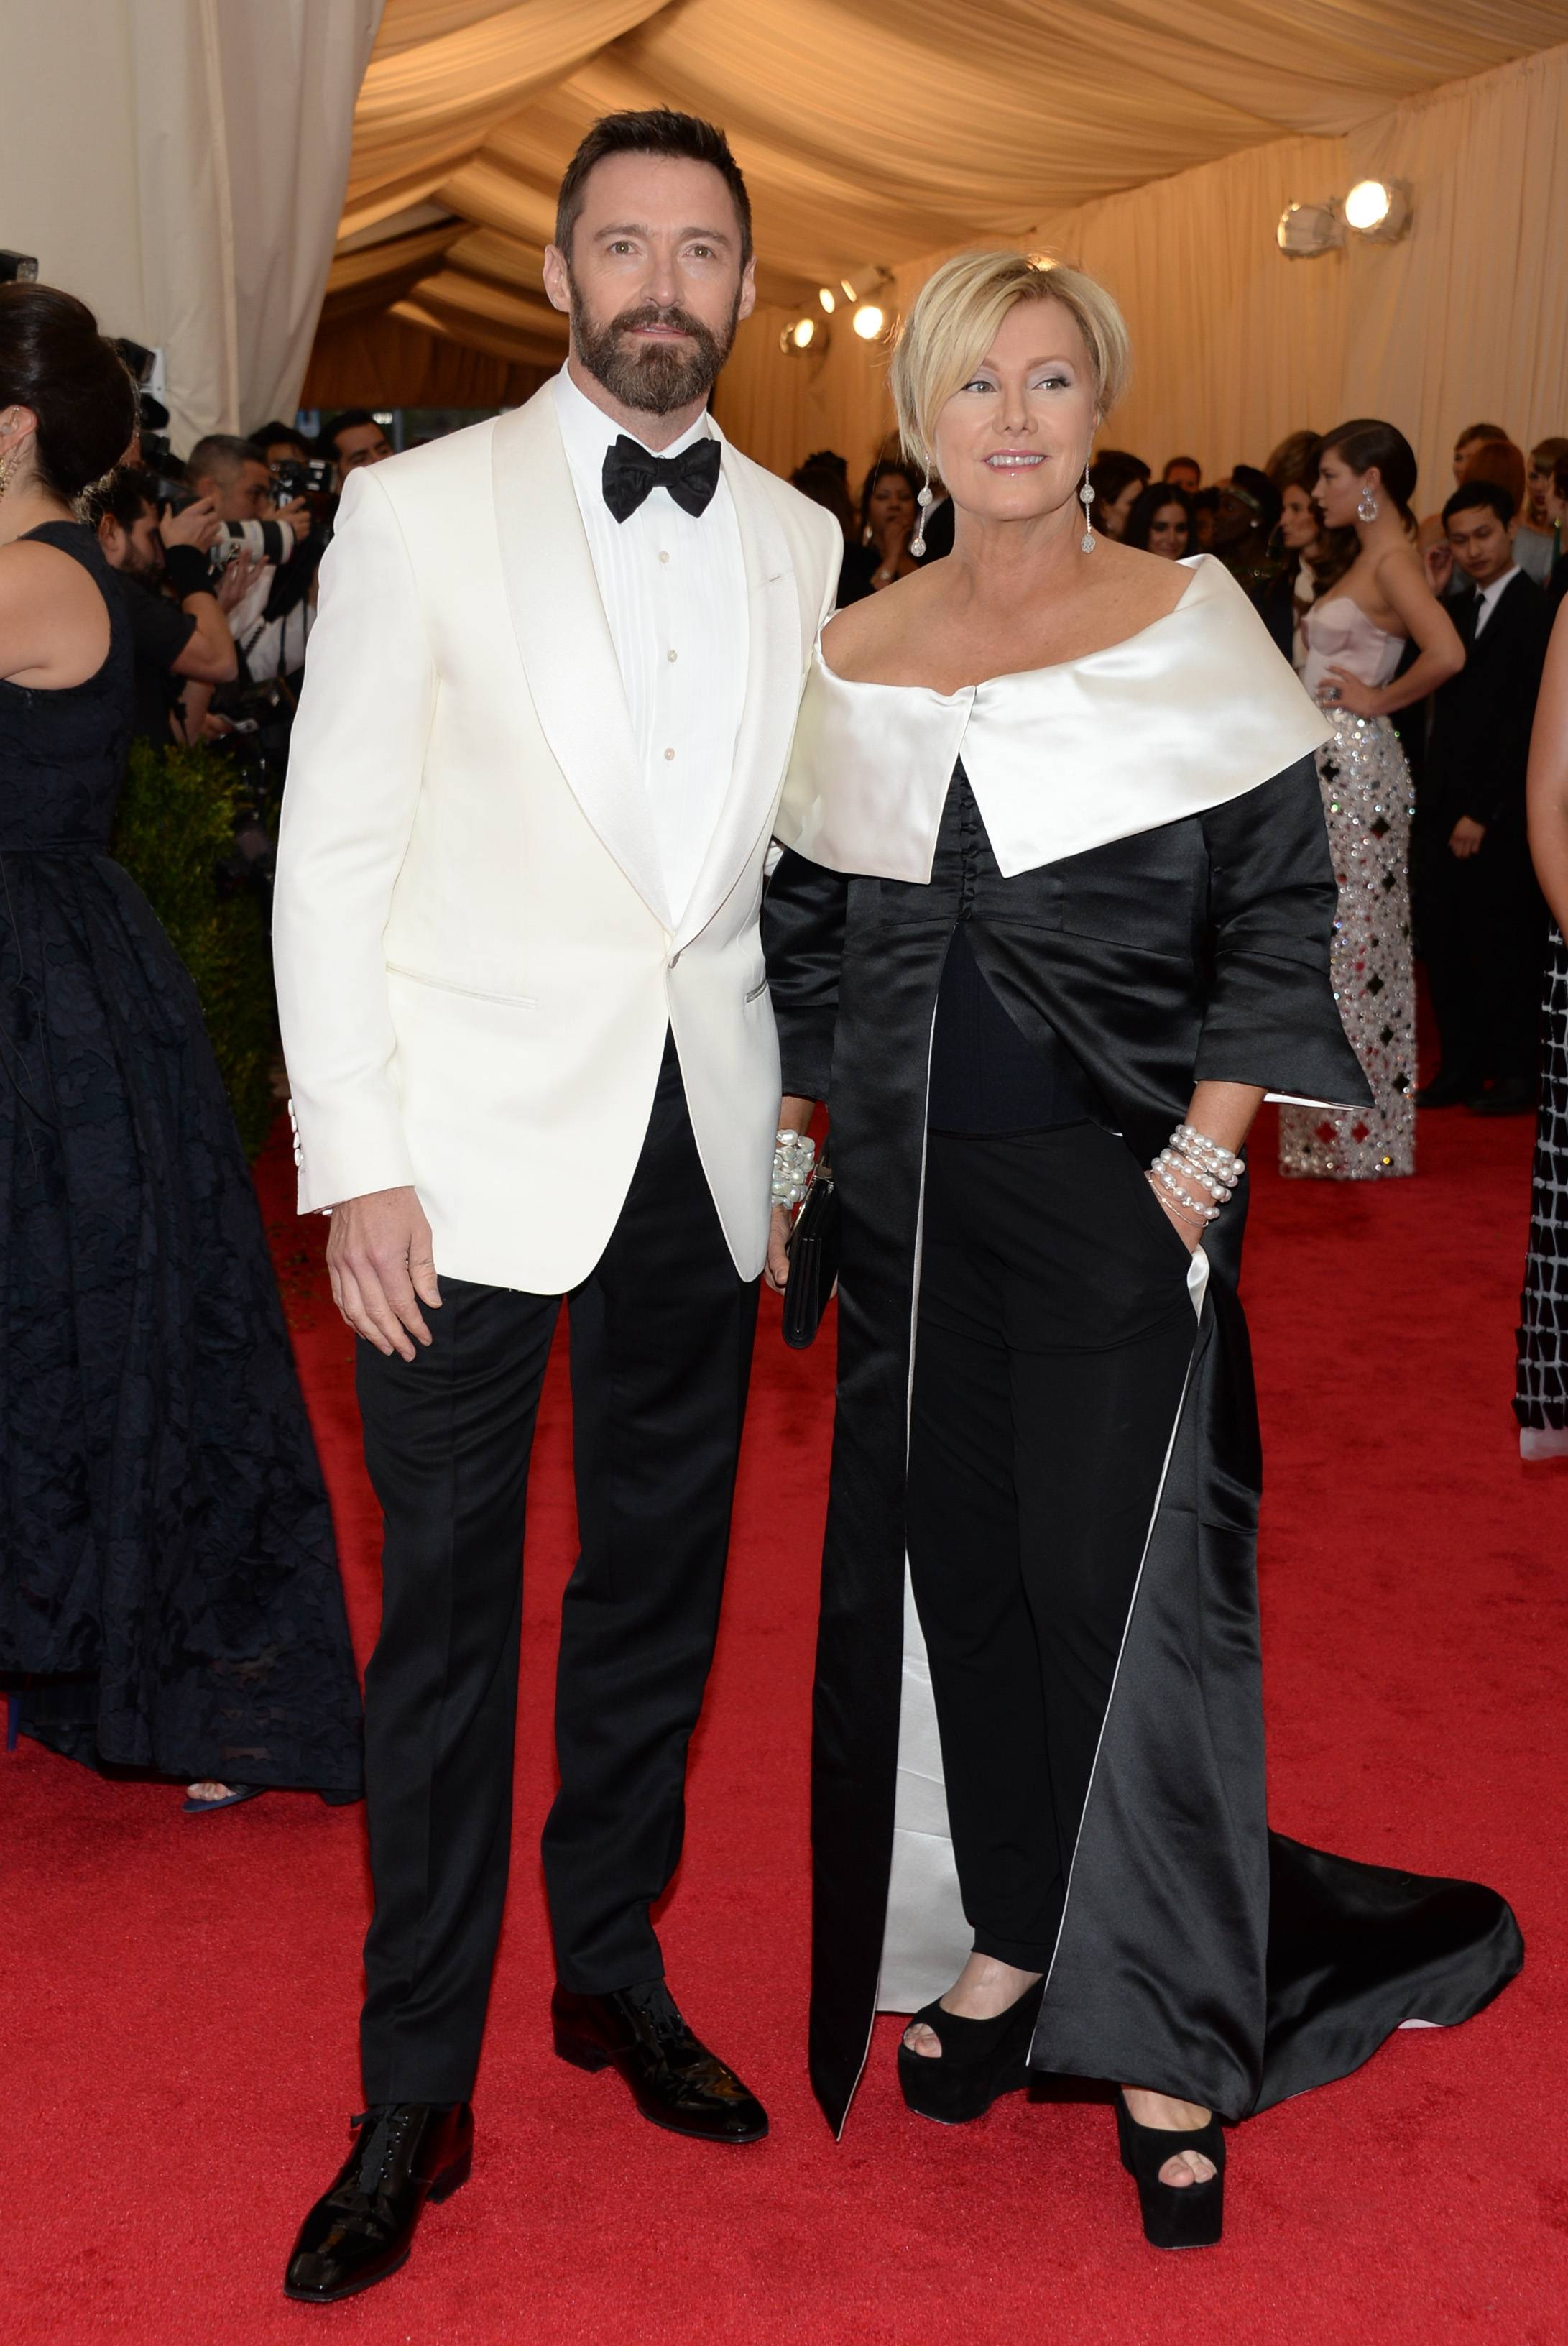 Hugh Jackman, who recently attended The Metropolitan Museum of Art's Costume Institute benefit gala with Deborra-Lee Furness, is heading back to Broadway in the fall.